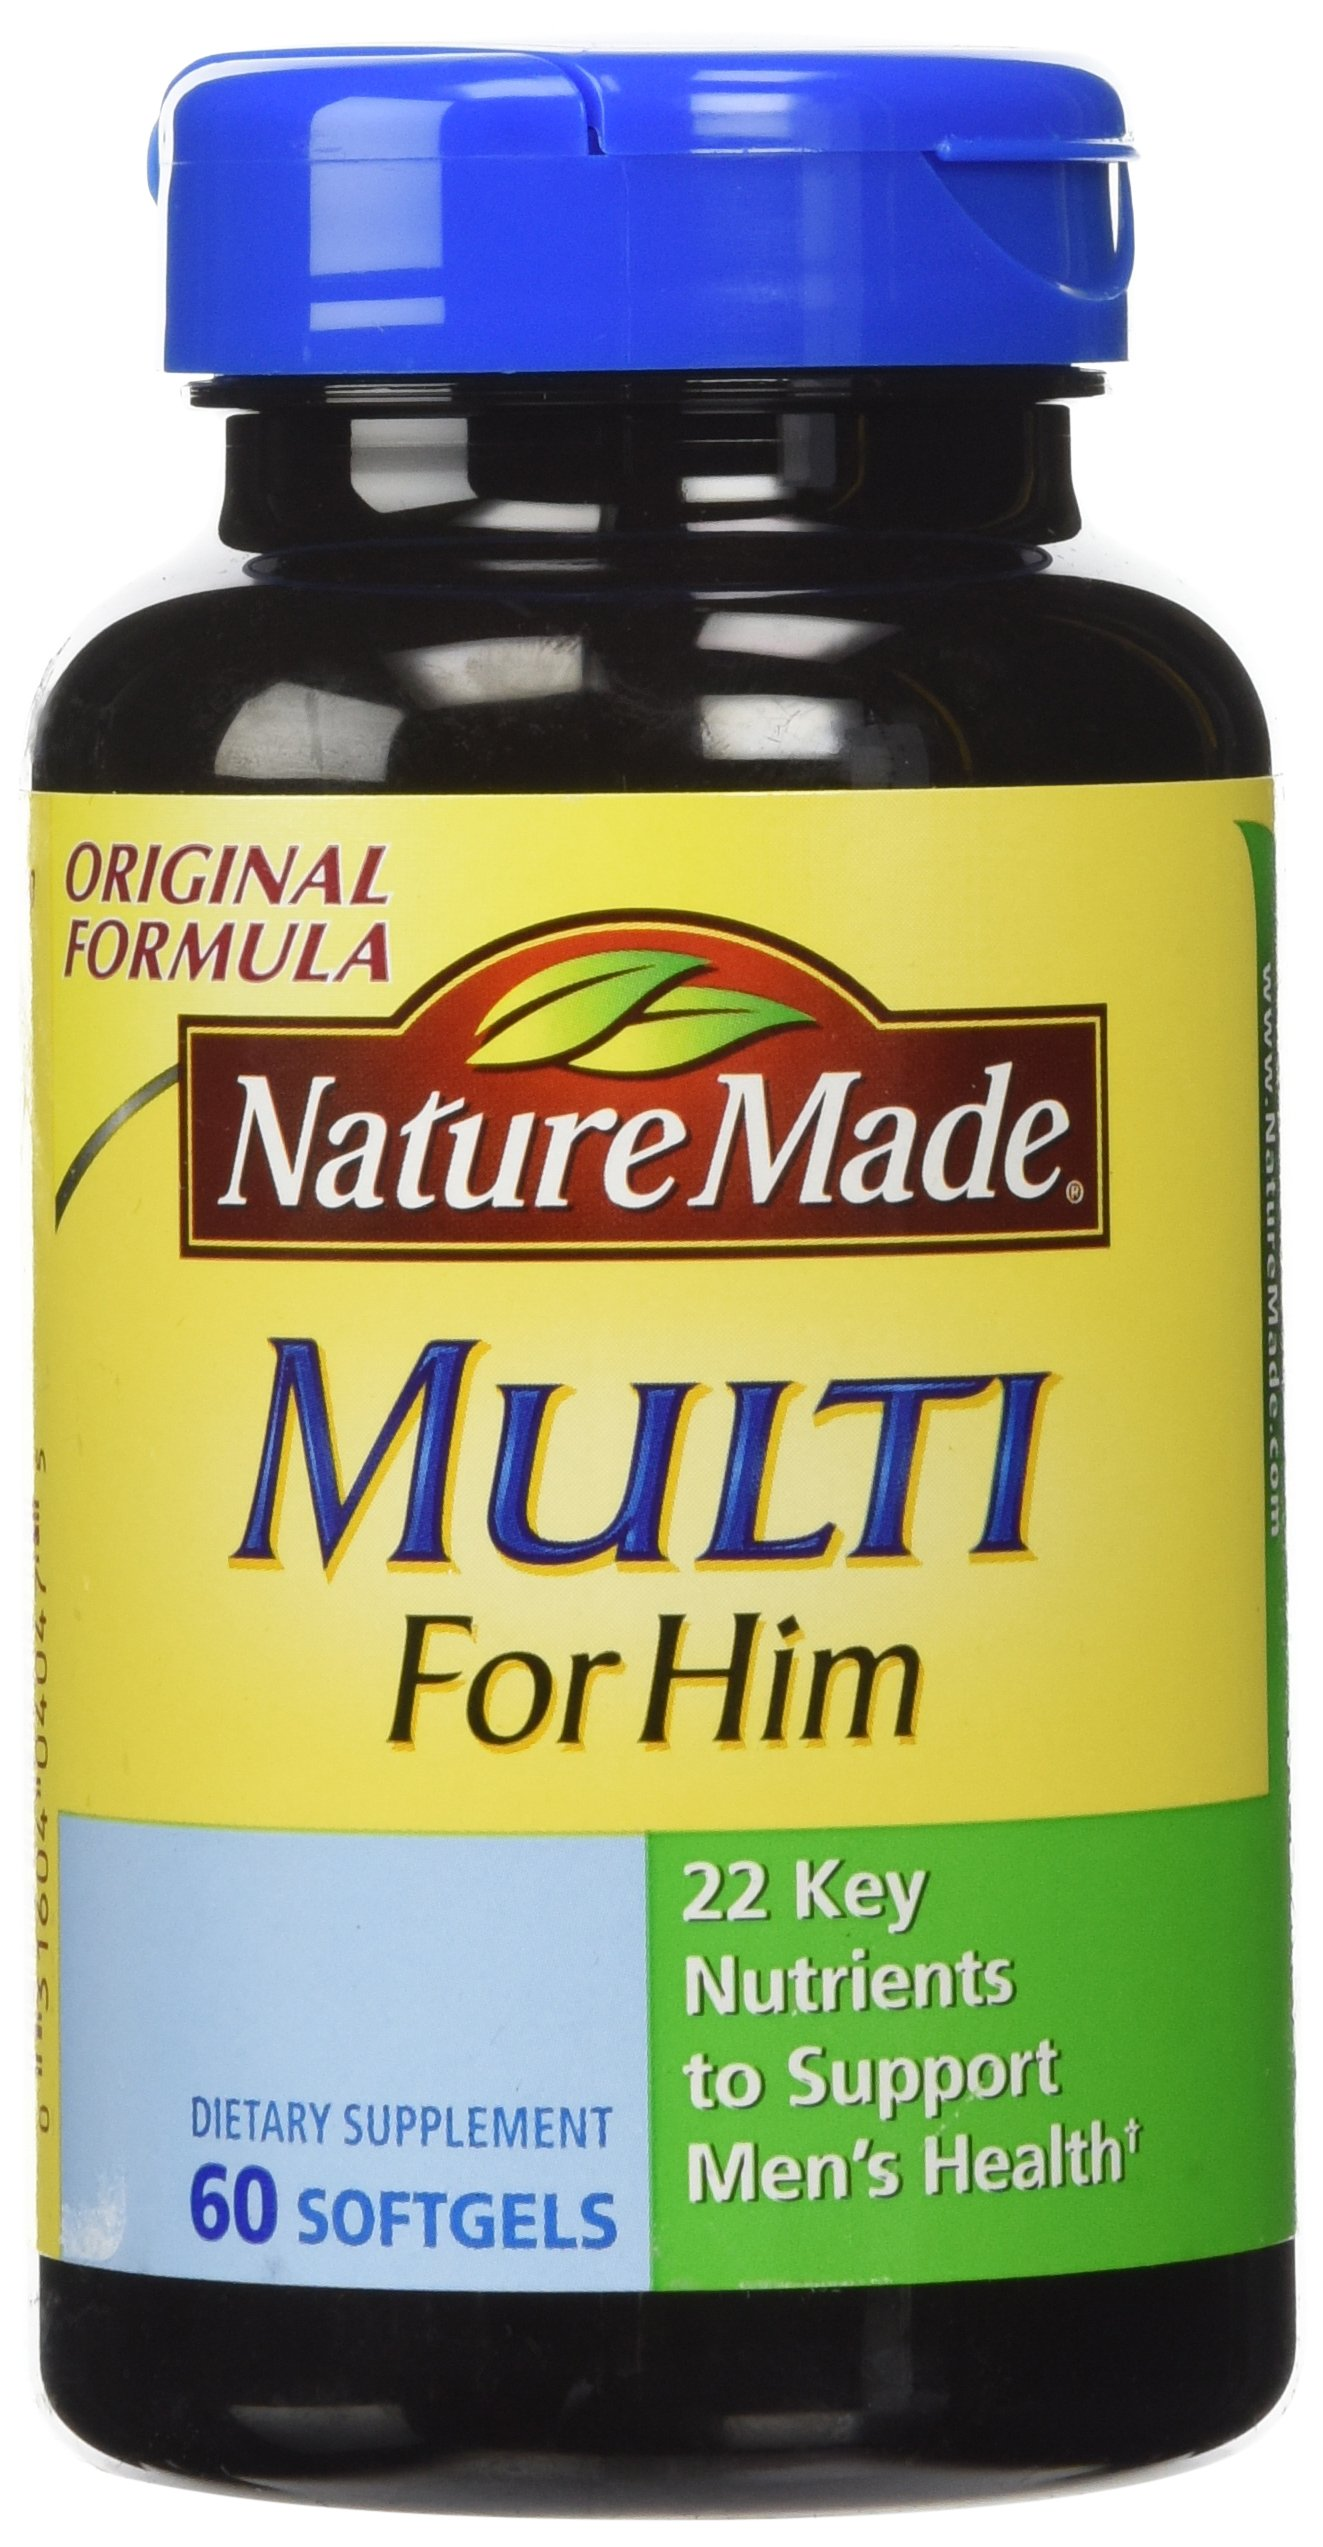 Nature made multi for her 50 softgels